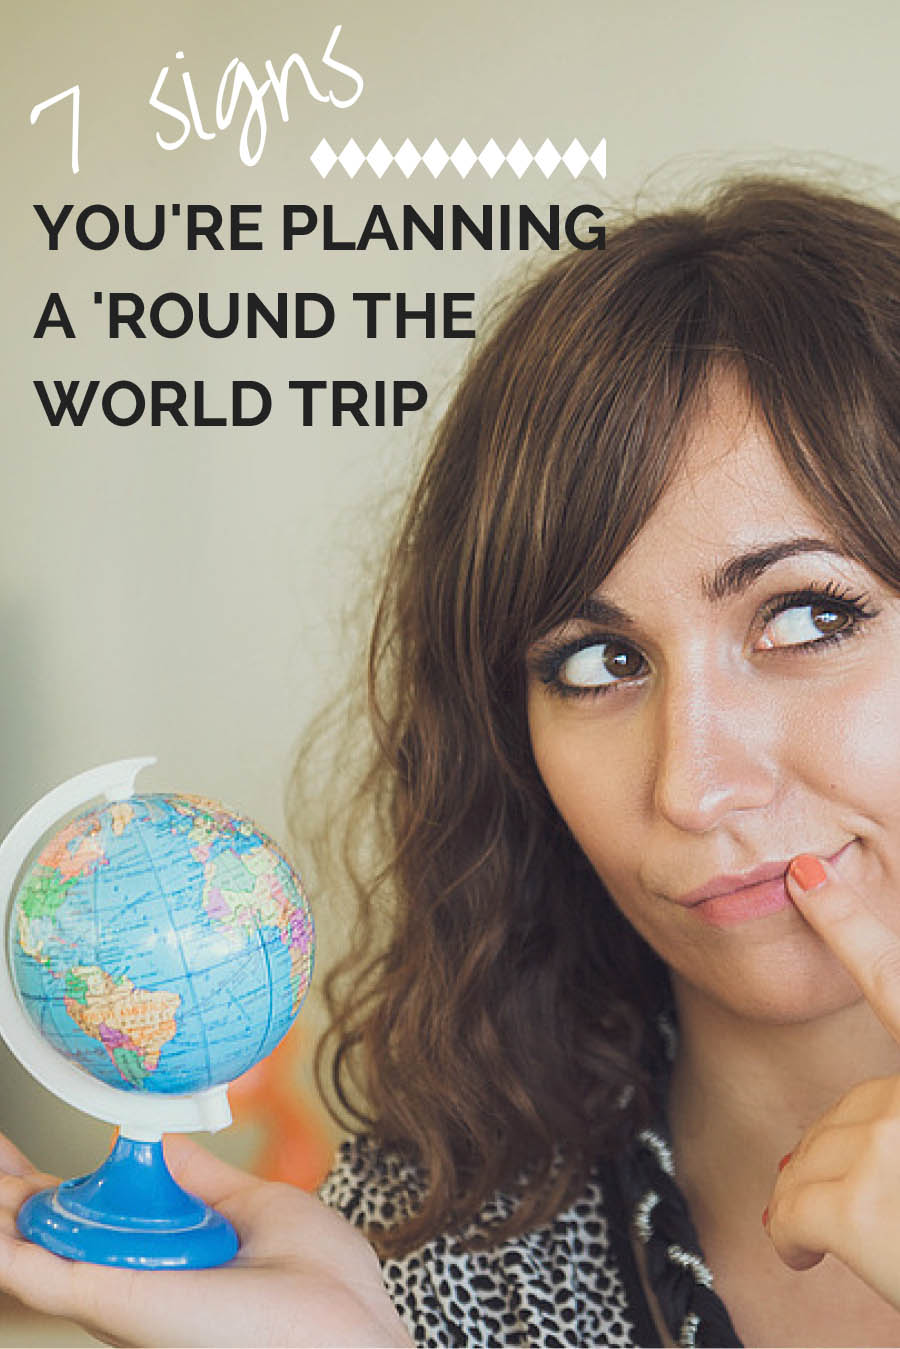 7 Signs You're Planning a 'Round the World Trip